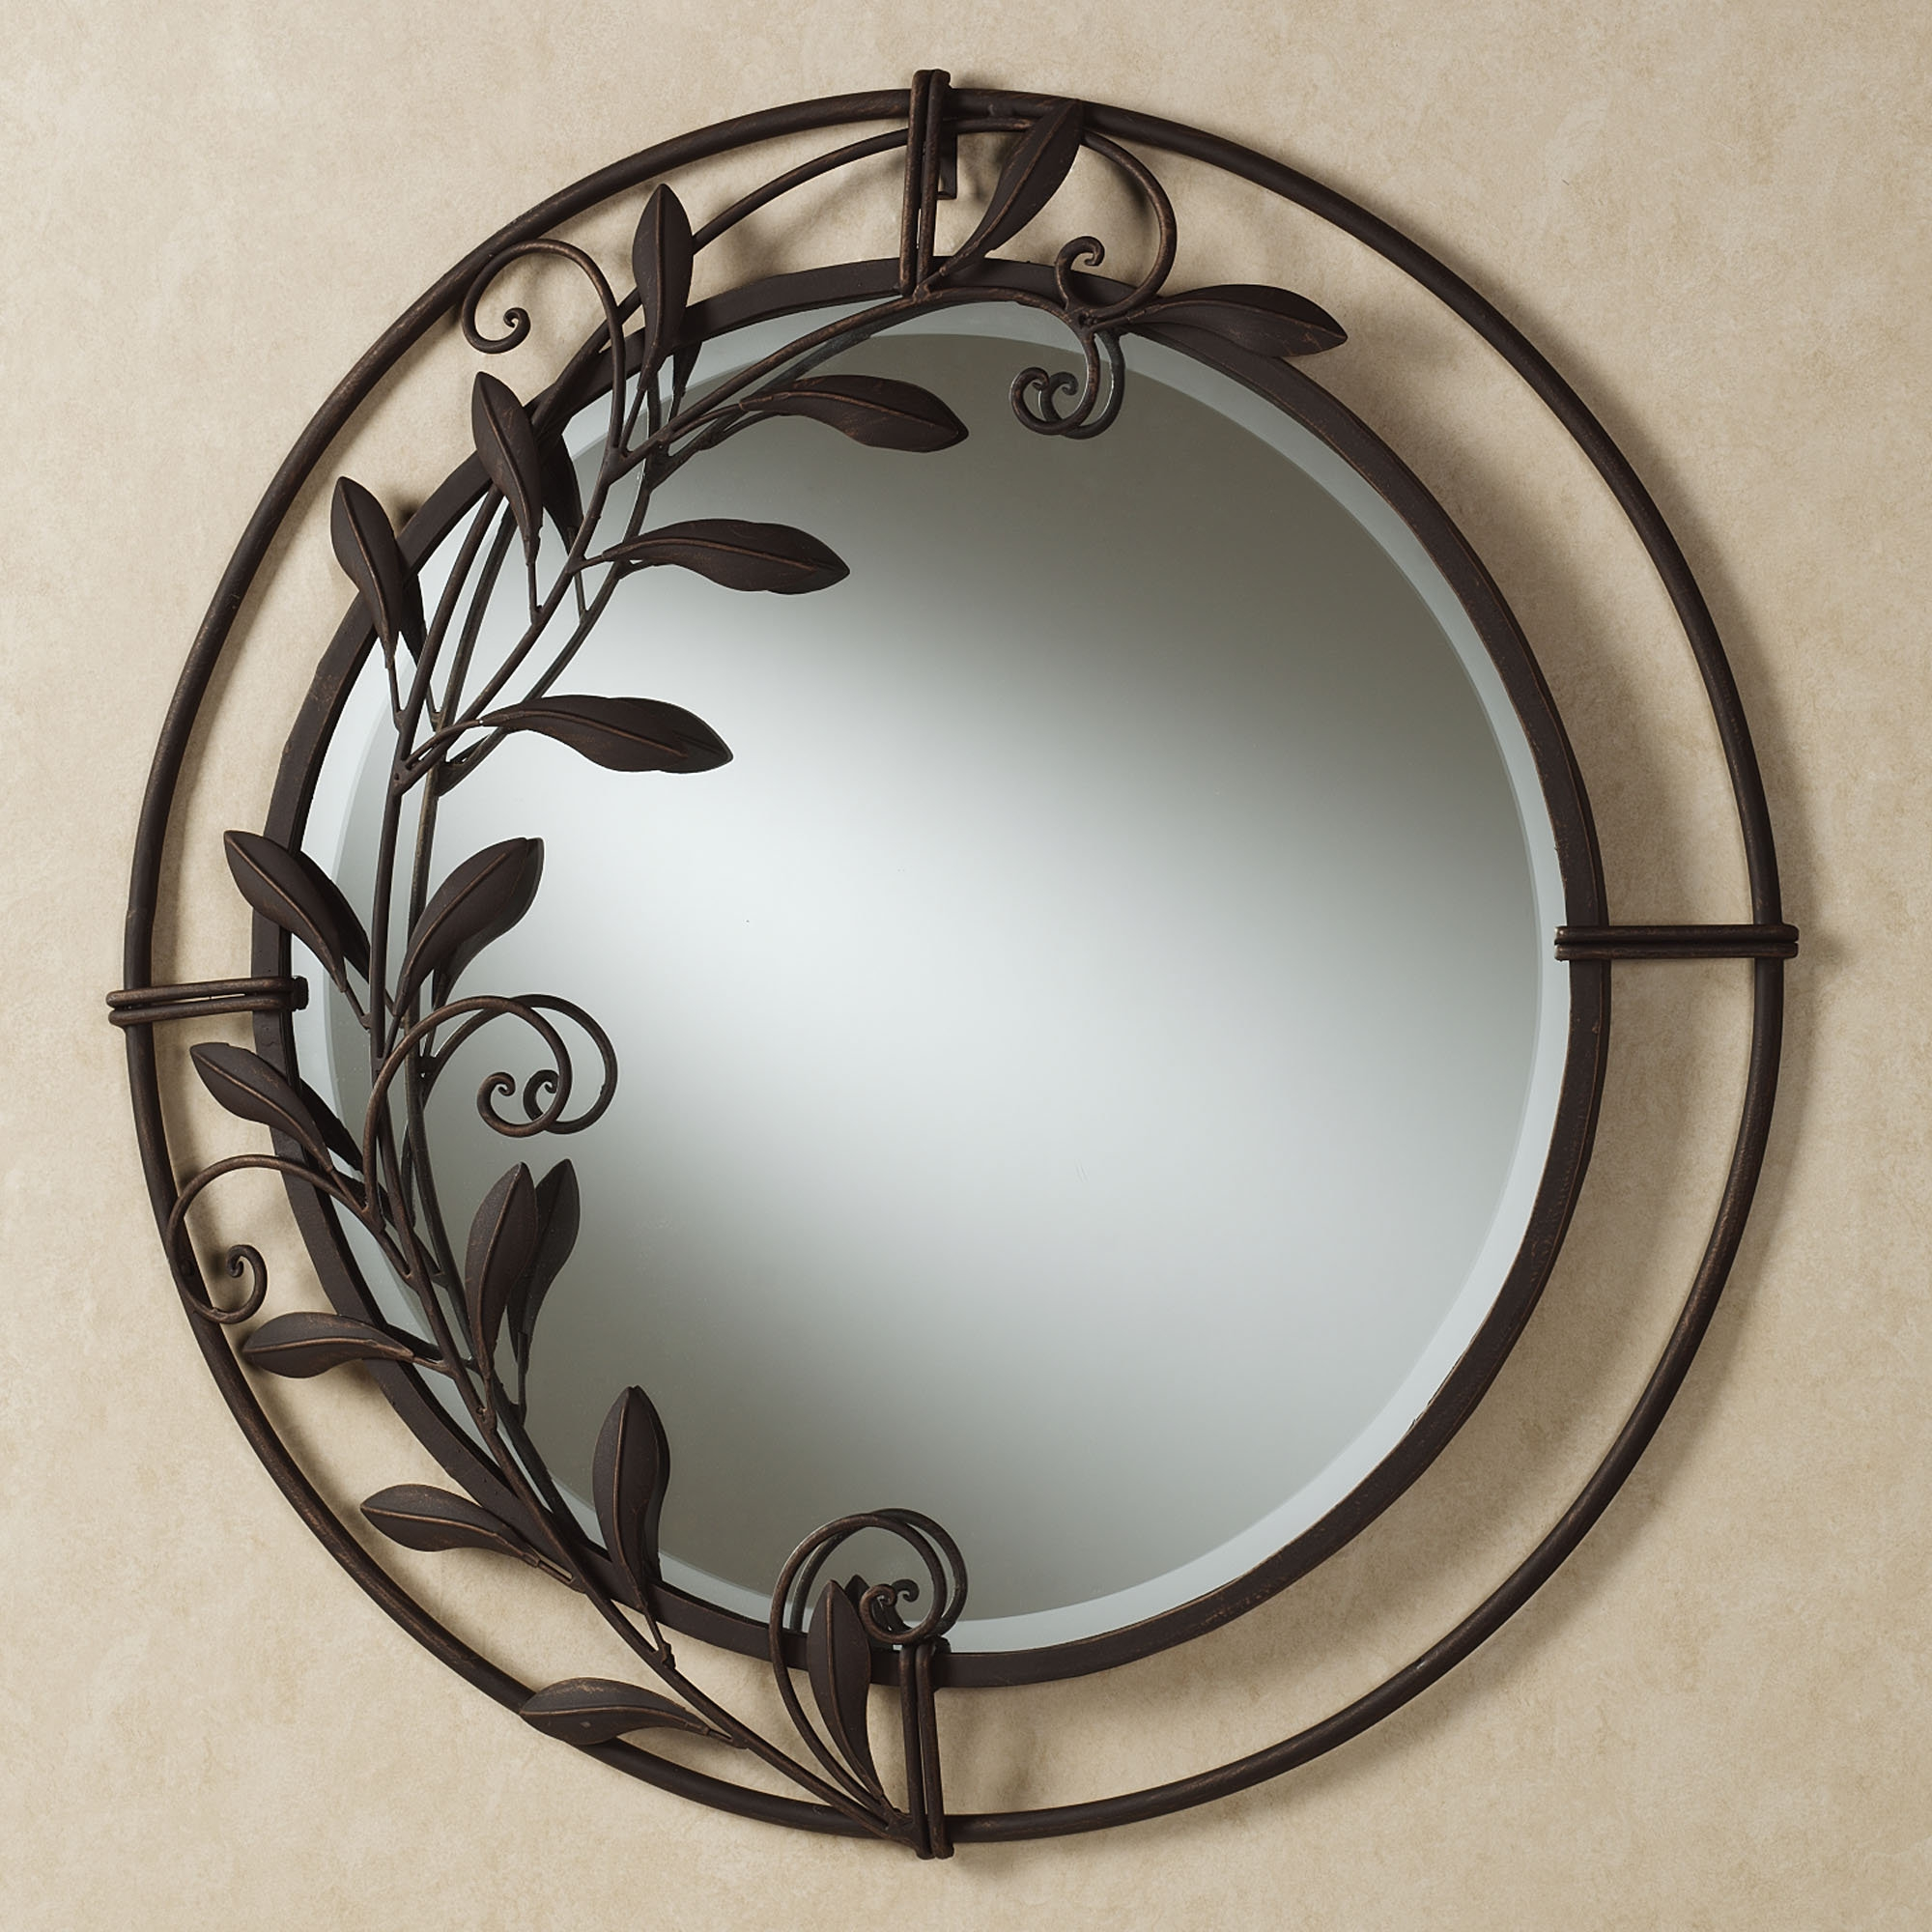 Metal Wall Mirrors Decorative